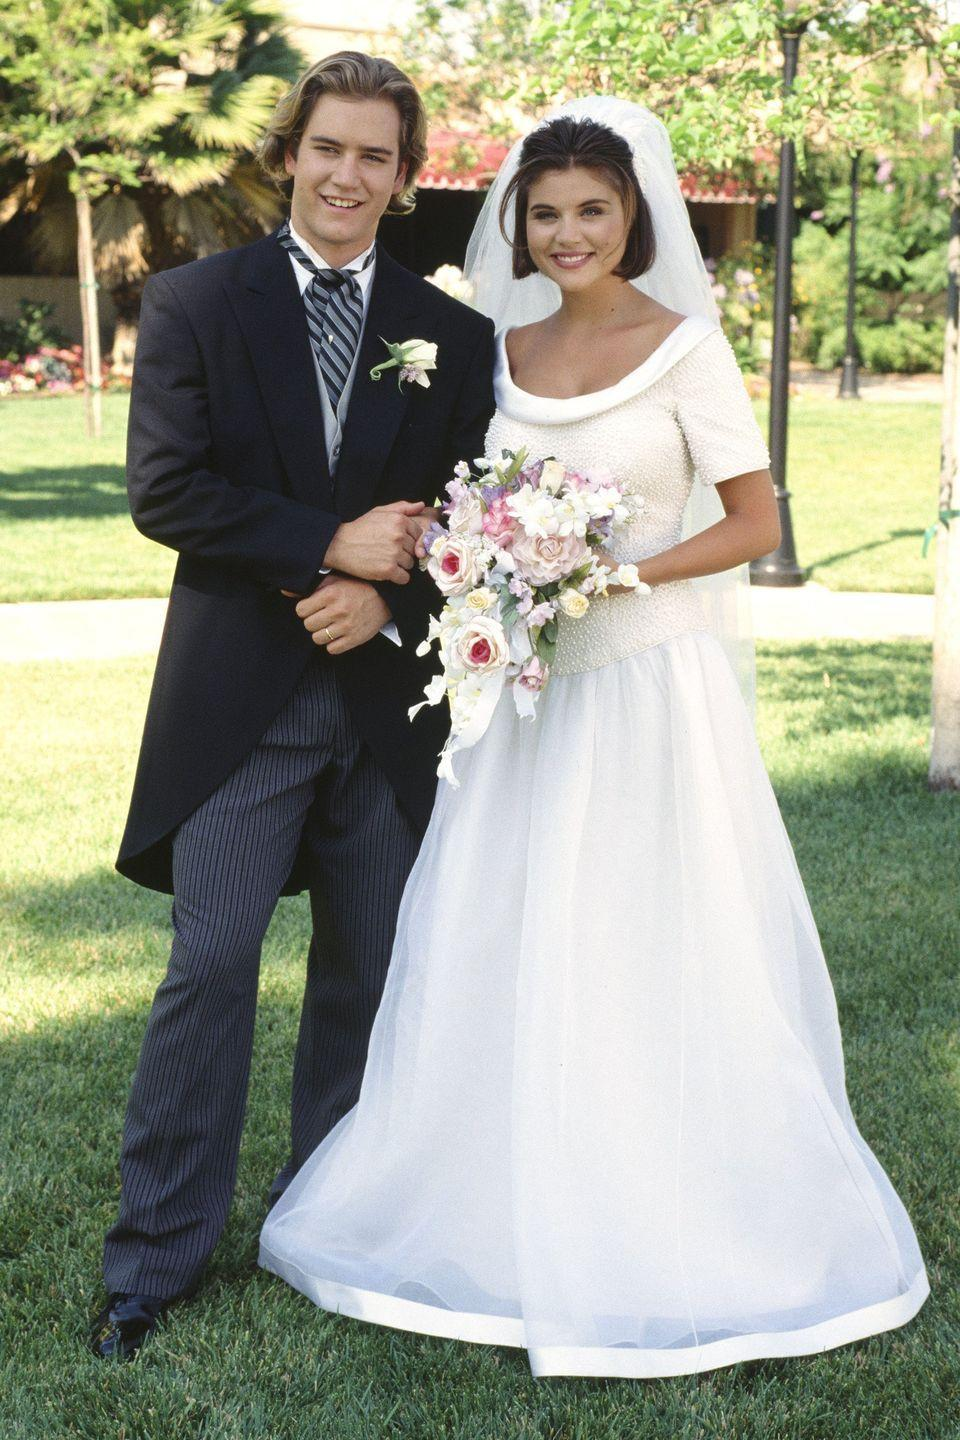 "<p>High-school sweethearts Kelly and Zack married in a beautiful outdoor wedding in Las Vegas. She wore a scoop-neck wedding dress with sleeves and a veil tucked into her short hair. The nups took place during the series finale of <span class=""redactor-unlink""><em>Saved by the Bell: The College Years</em></span>. </p>"